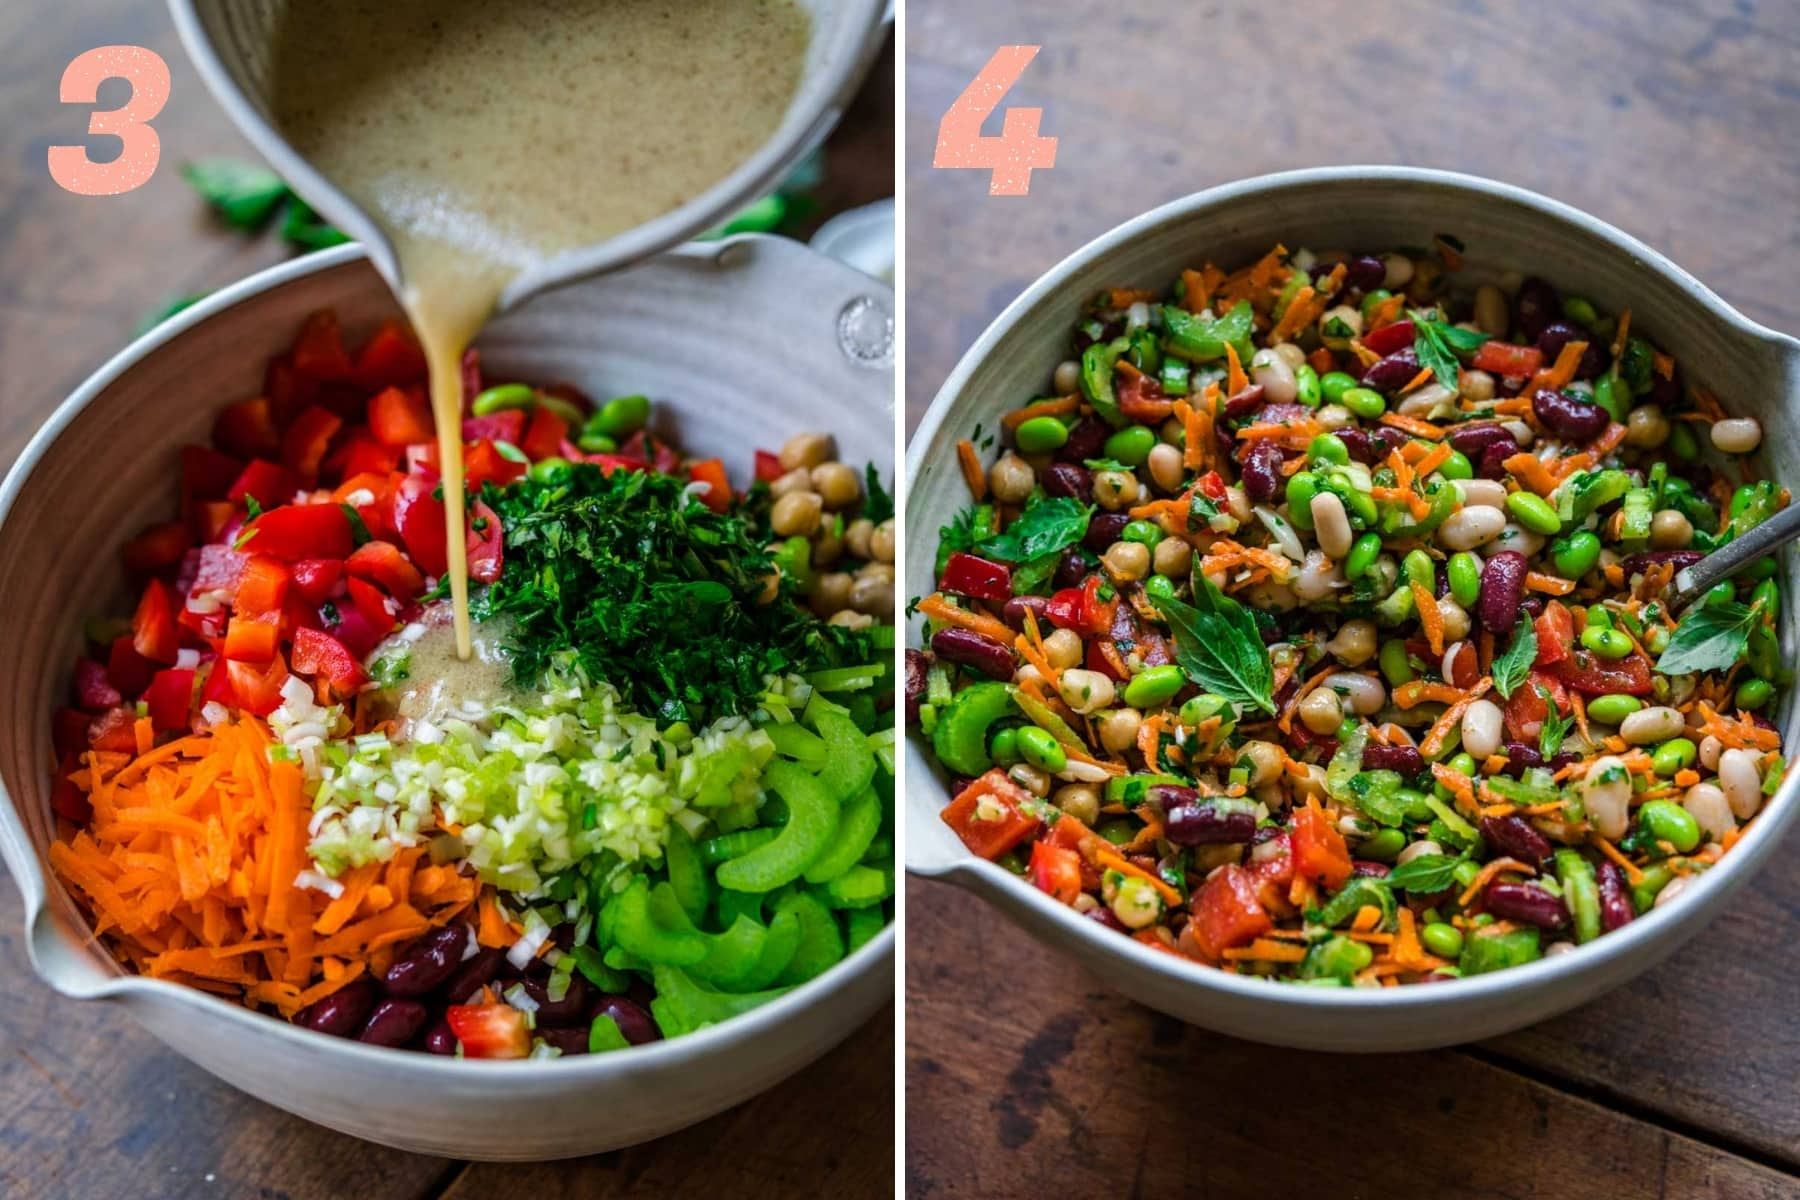 before and after mixing together ingredients for four bean salad in a bowl.